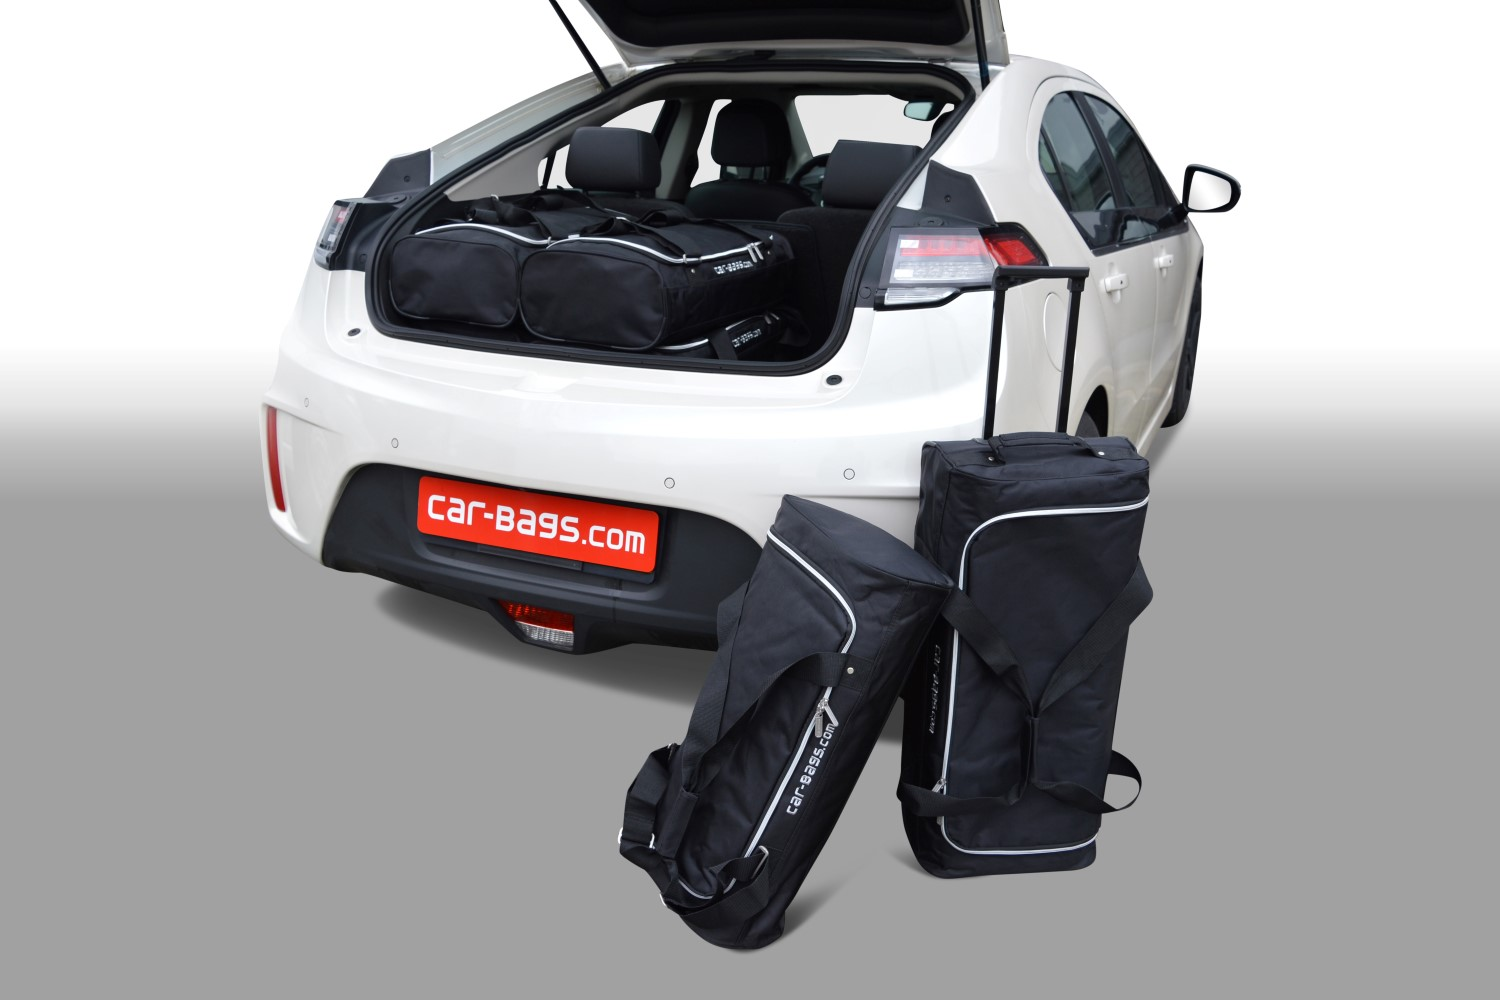 car bags opel nodig avao scherp geprijsde autoaccessoires. Black Bedroom Furniture Sets. Home Design Ideas